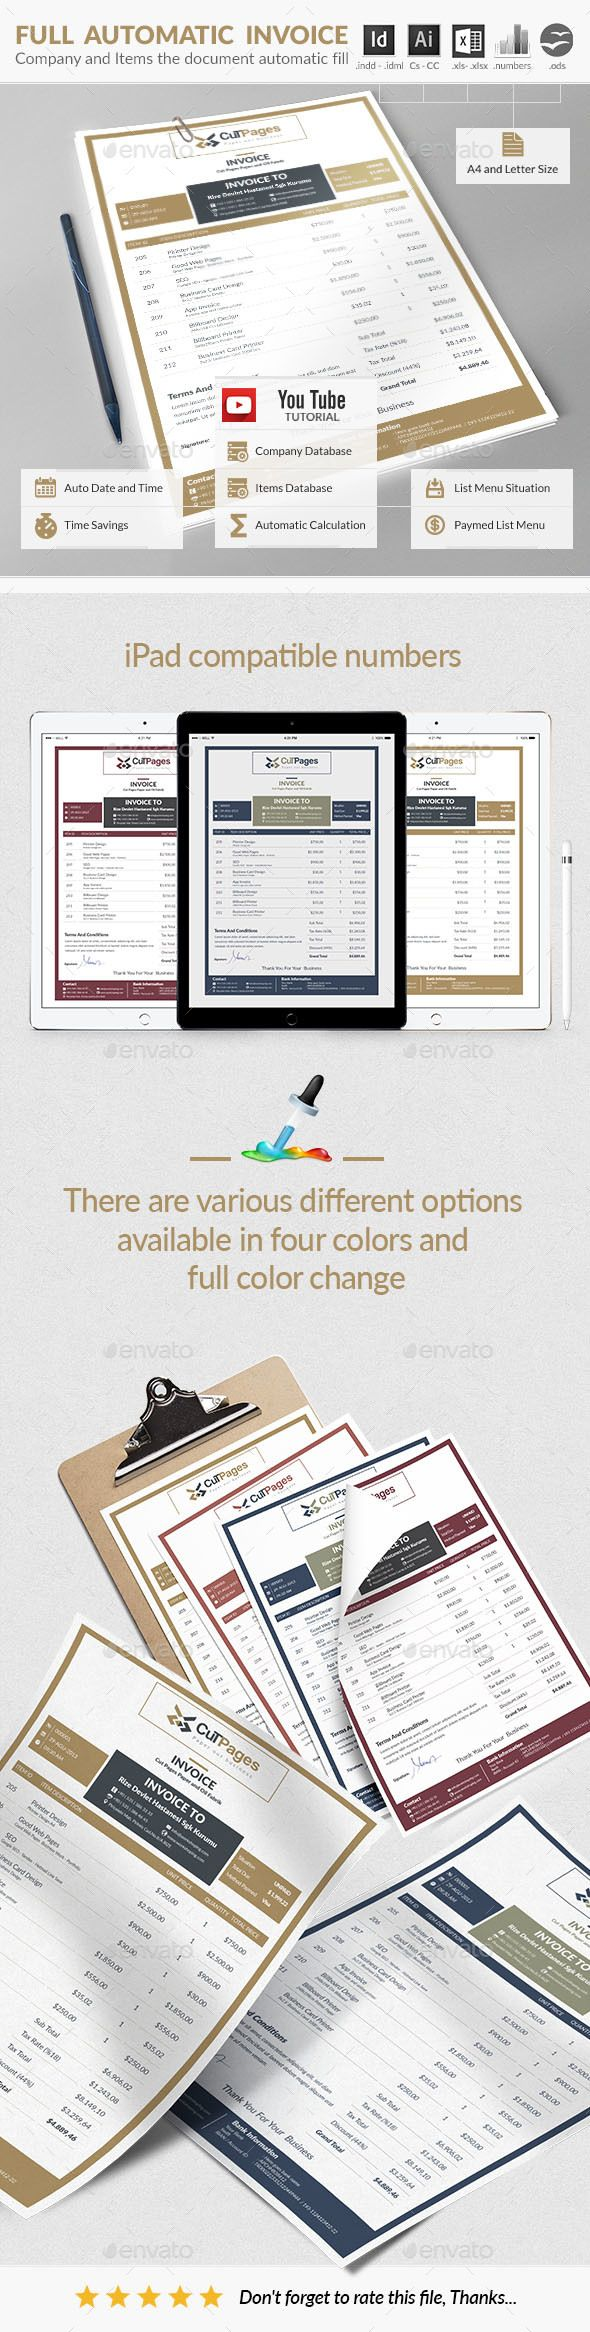 Invoice Design Template - Proposals & Invoices Template InDesign INDD, AI Illustraor. Download here: http://graphicriver.net/item/invoice/16896092?s_rank=63&ref=yinkira